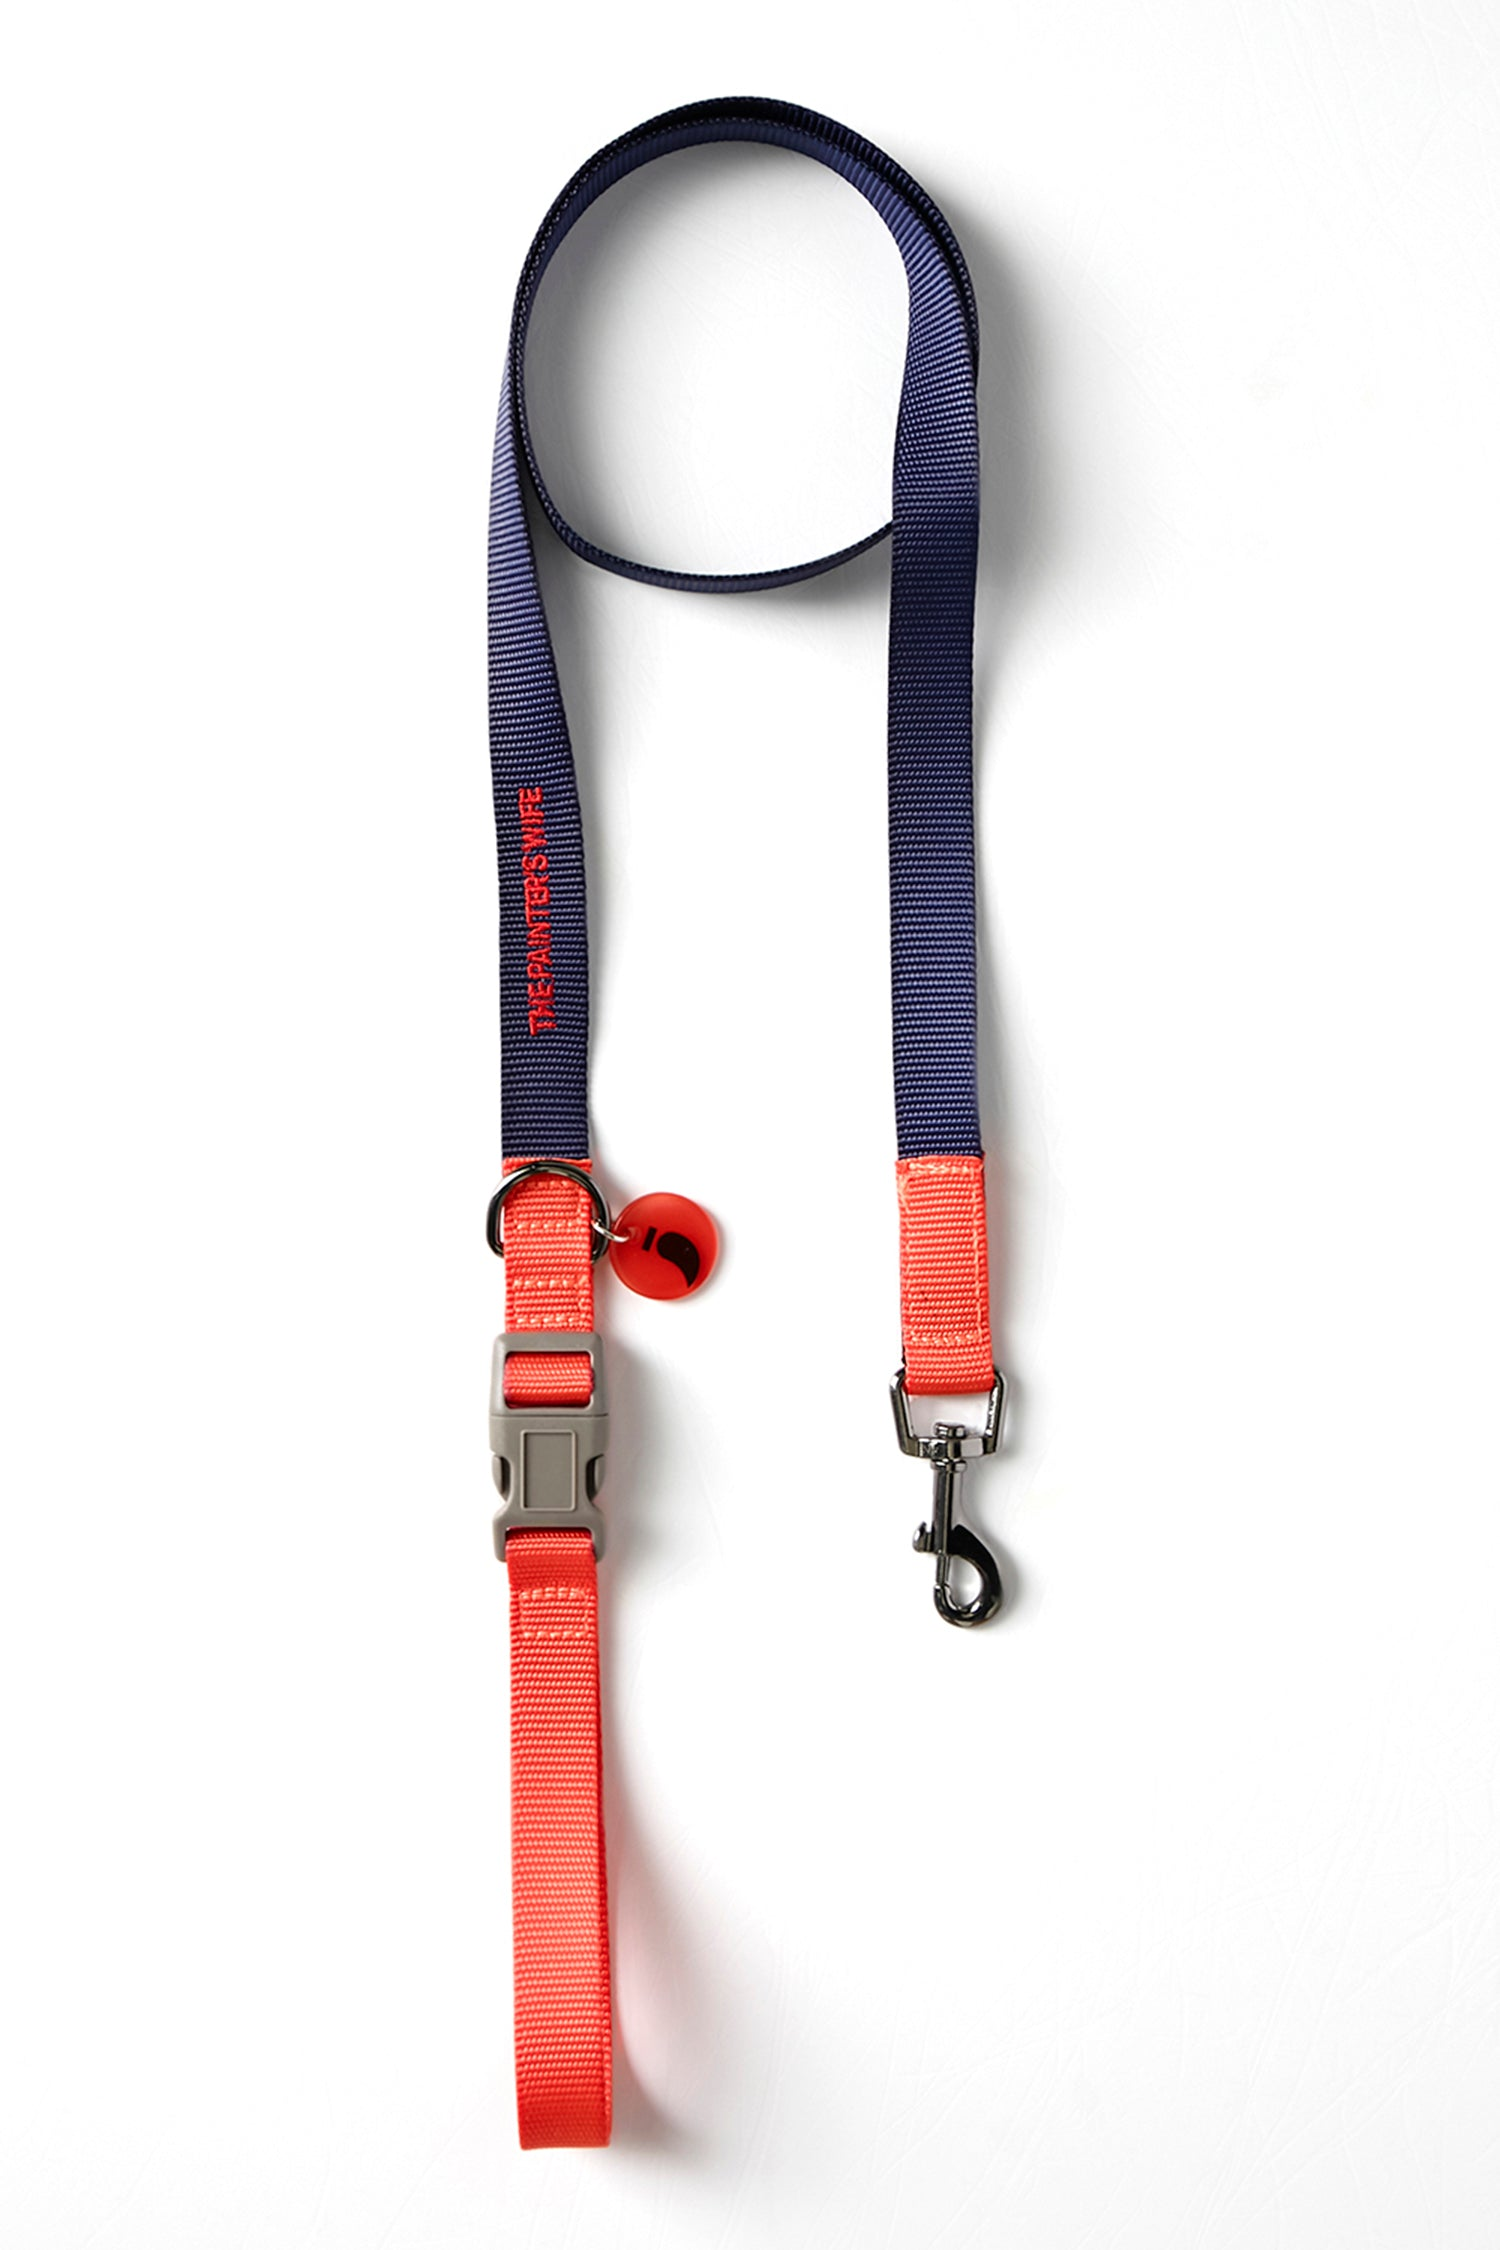 LEASH SONIA - NAVY & VERMILION